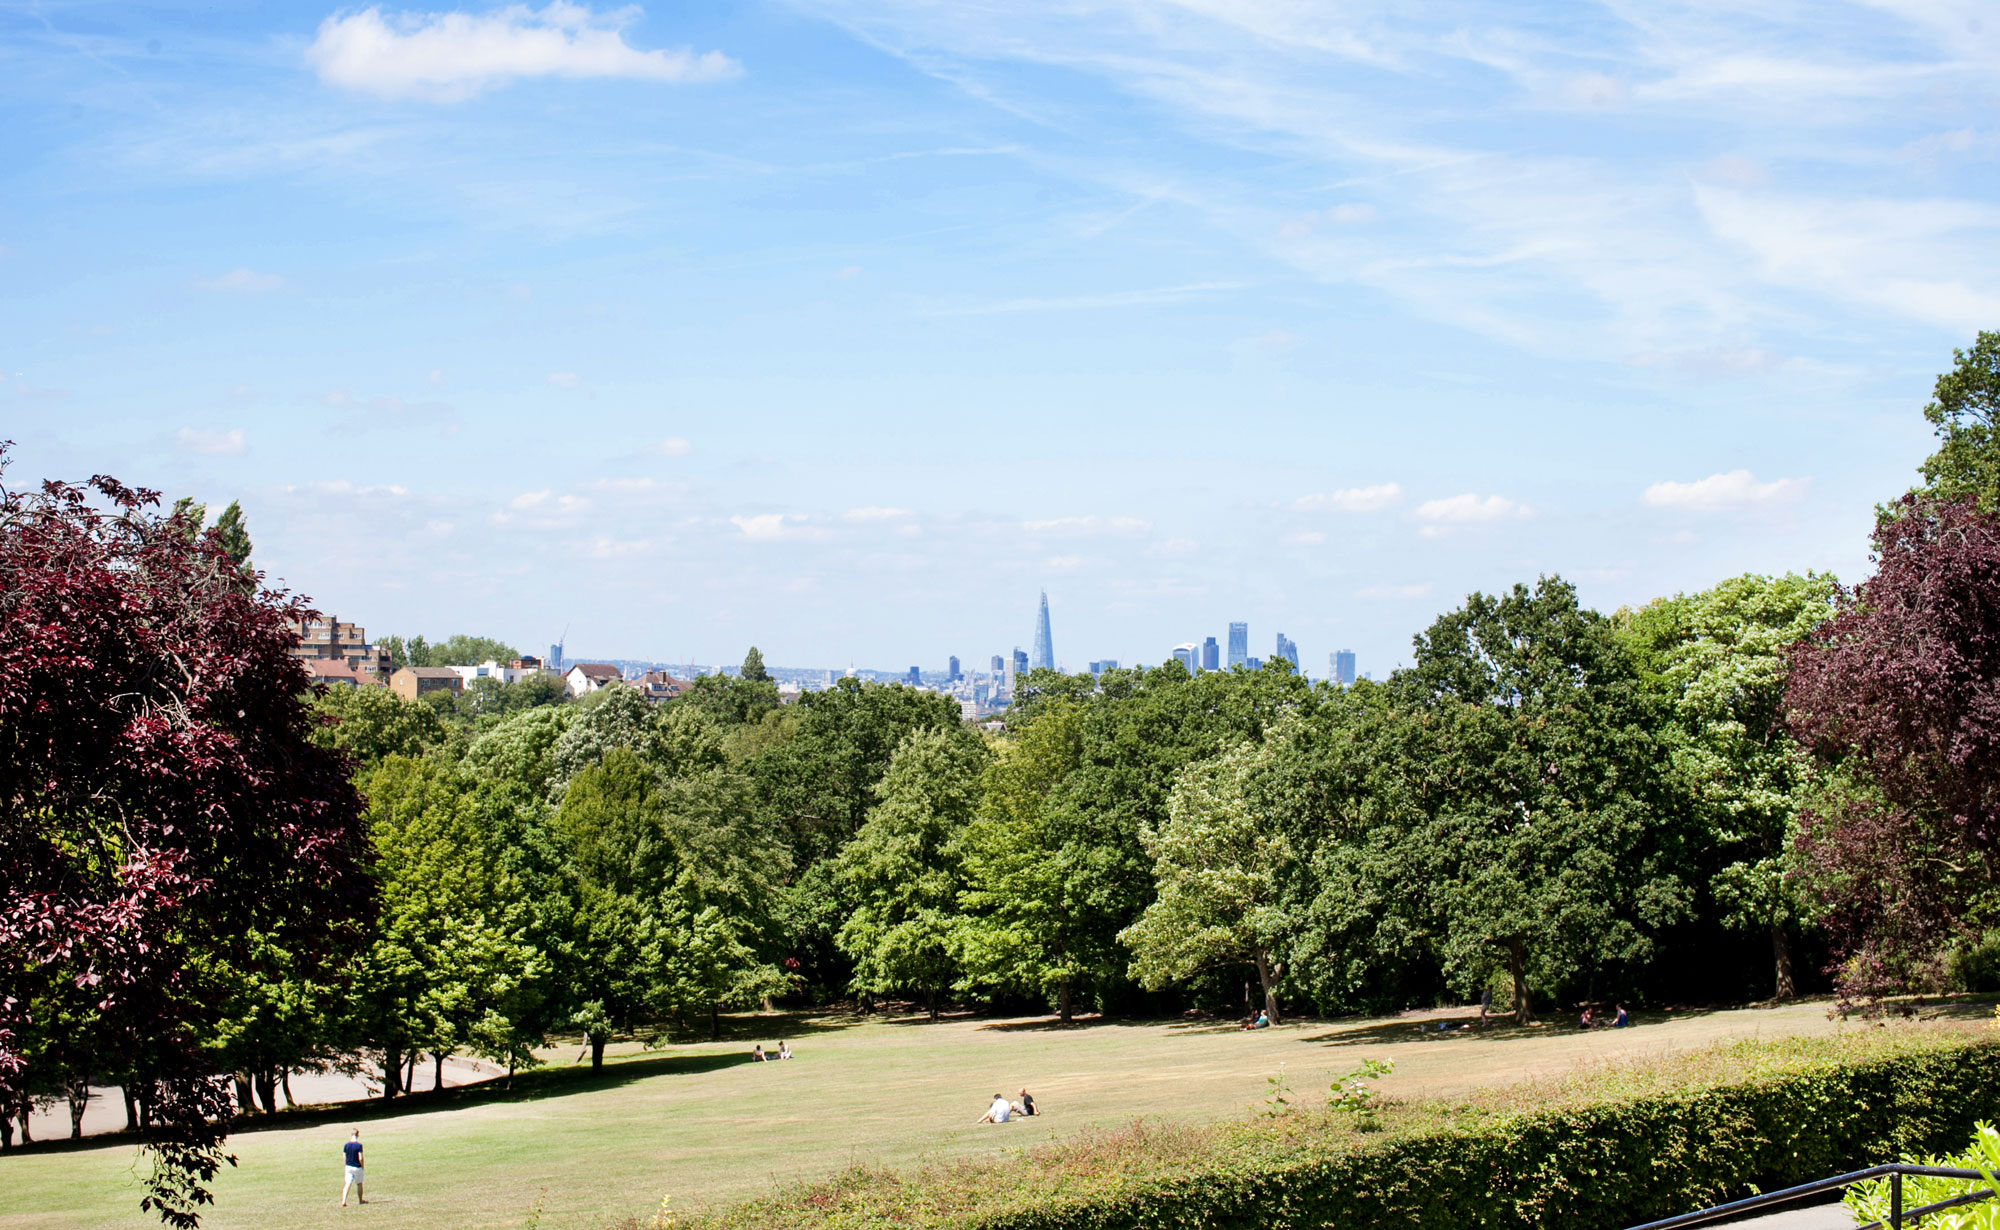 Grass that is yellowing in the sun slopes down towards a line of trees in the distance, with a view of the London skyline in the far distance. The sky is blue with wisps of cloud.